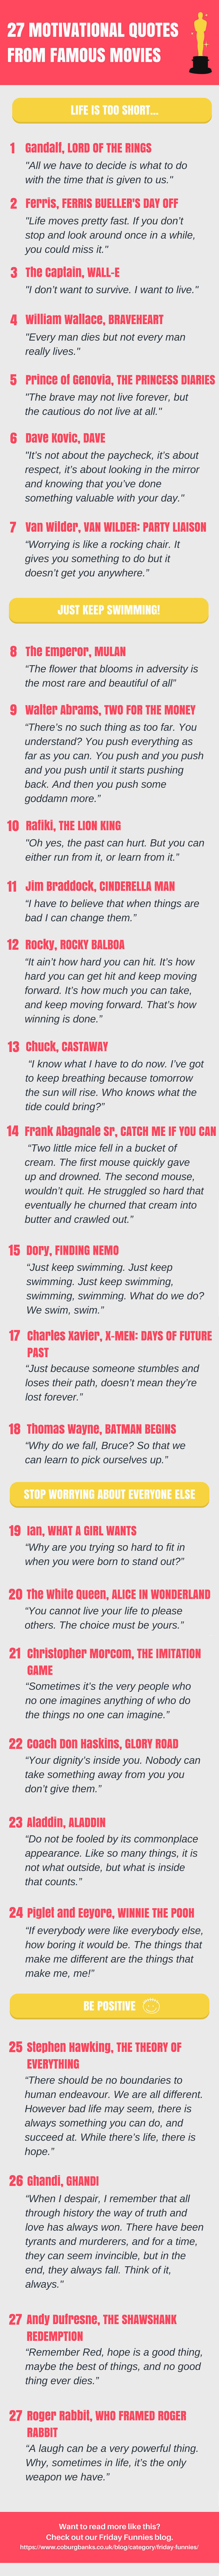 27 Motivational Quotes From Famous Movies Infographic